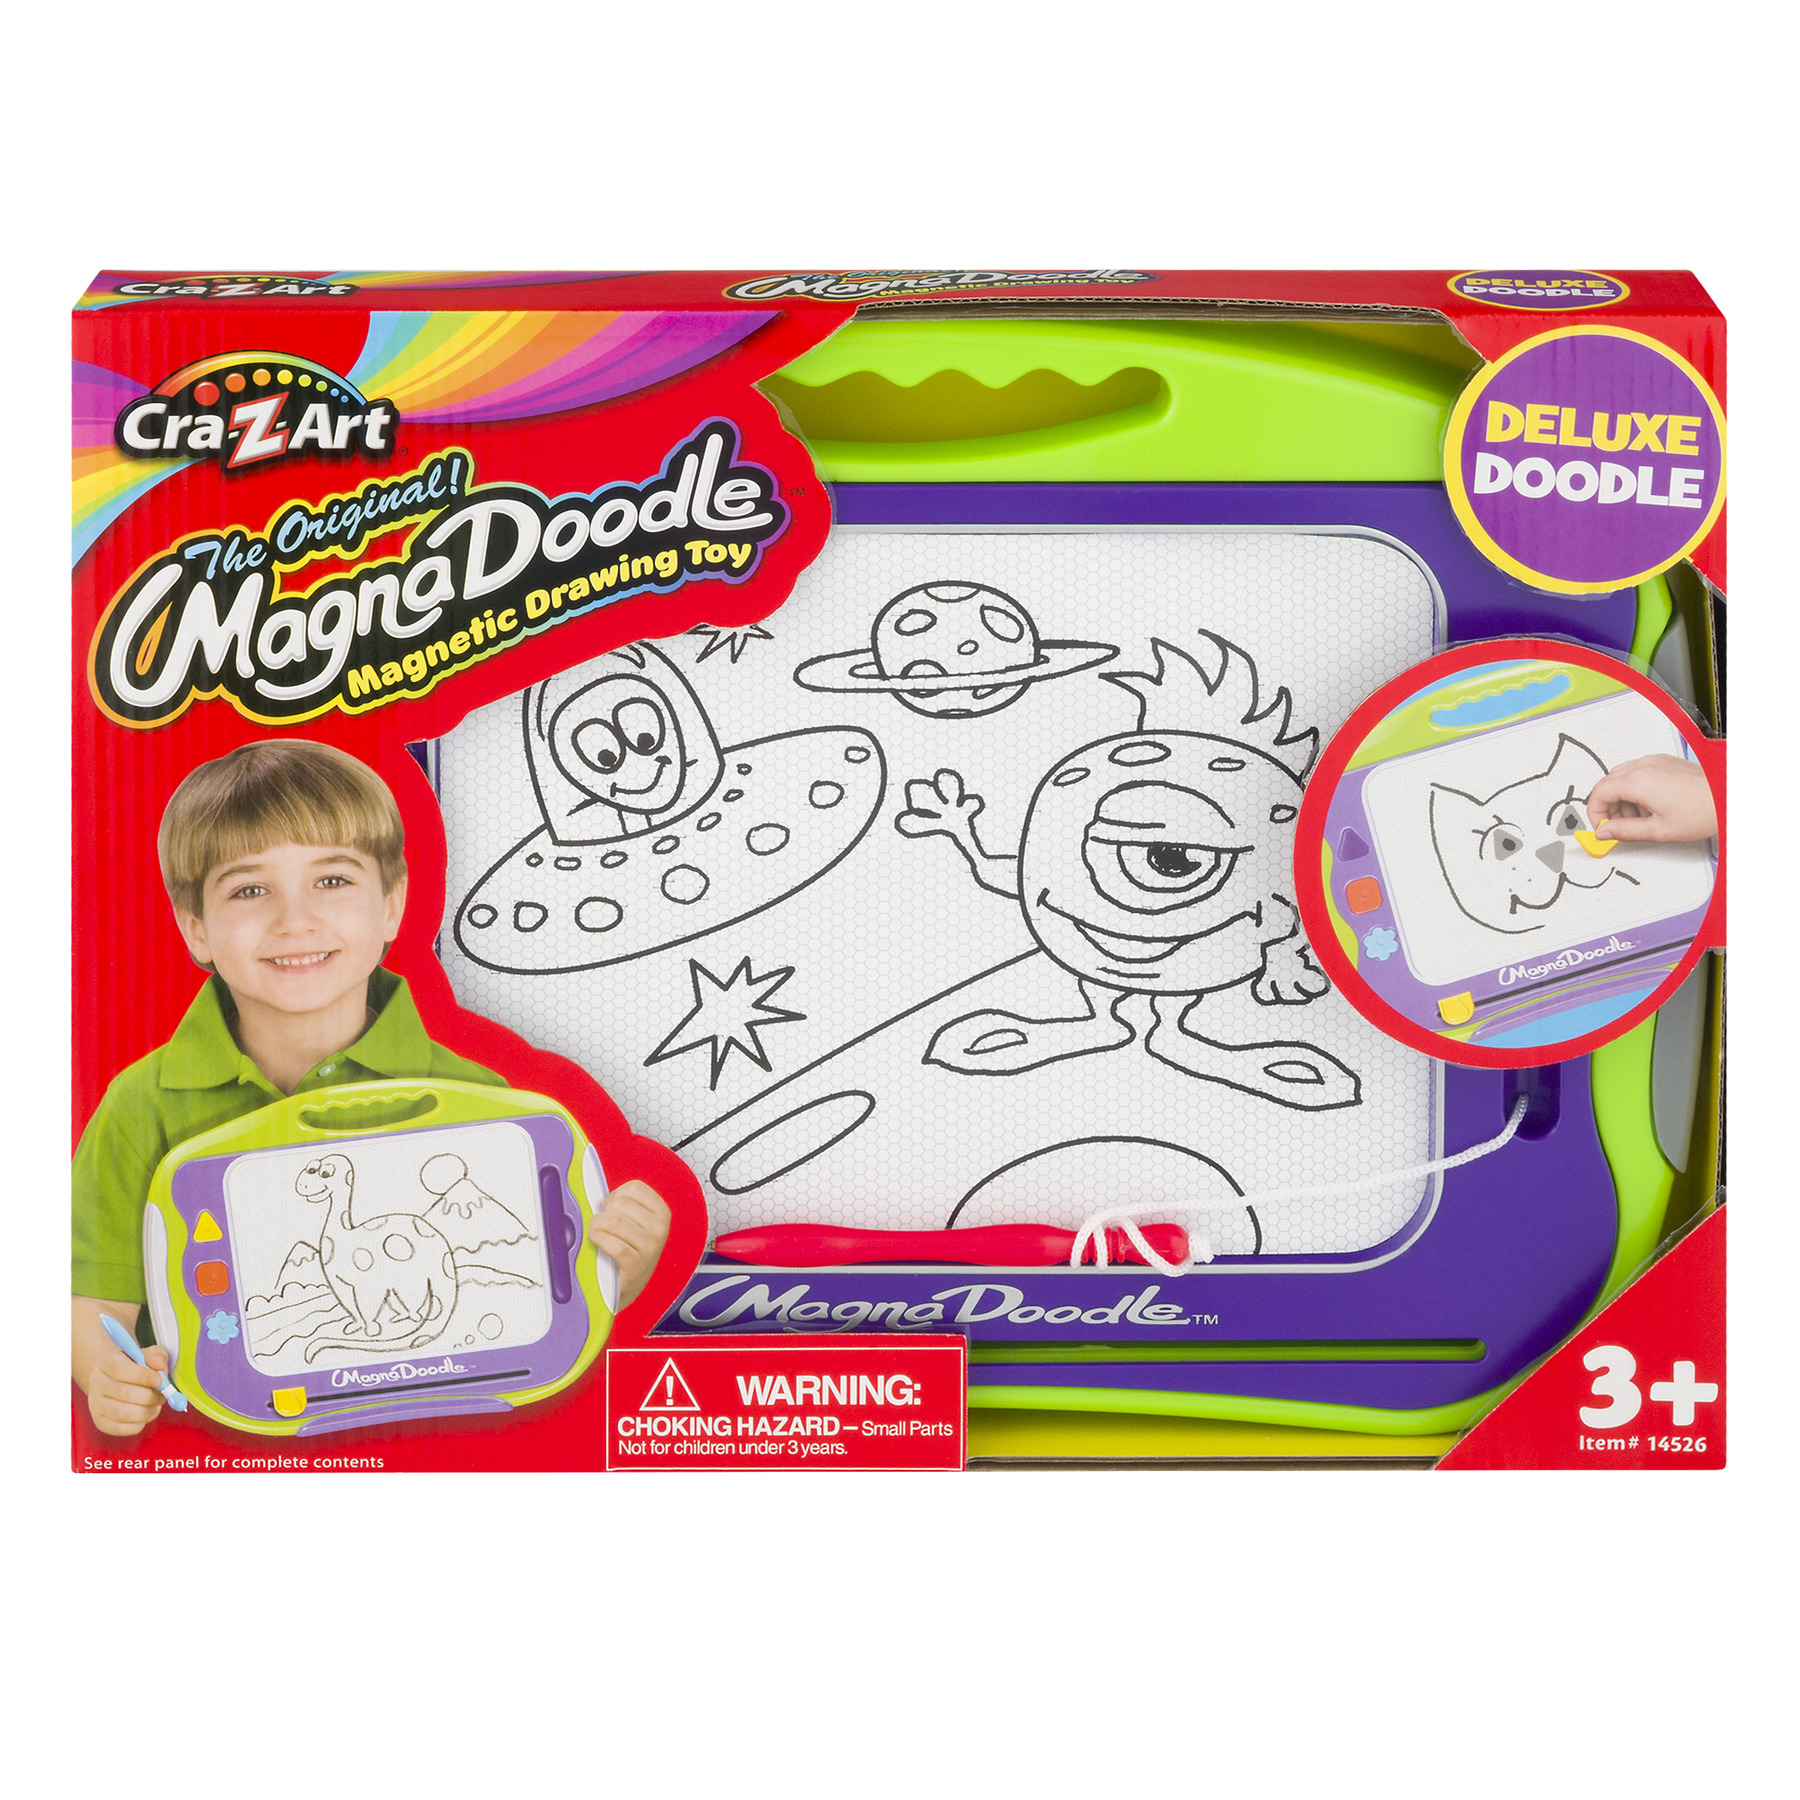 Cra-Z-Art The Original Magna Doodle Magnetic Drawing Toy, 1.0 CT by LaRose Industries, LLC